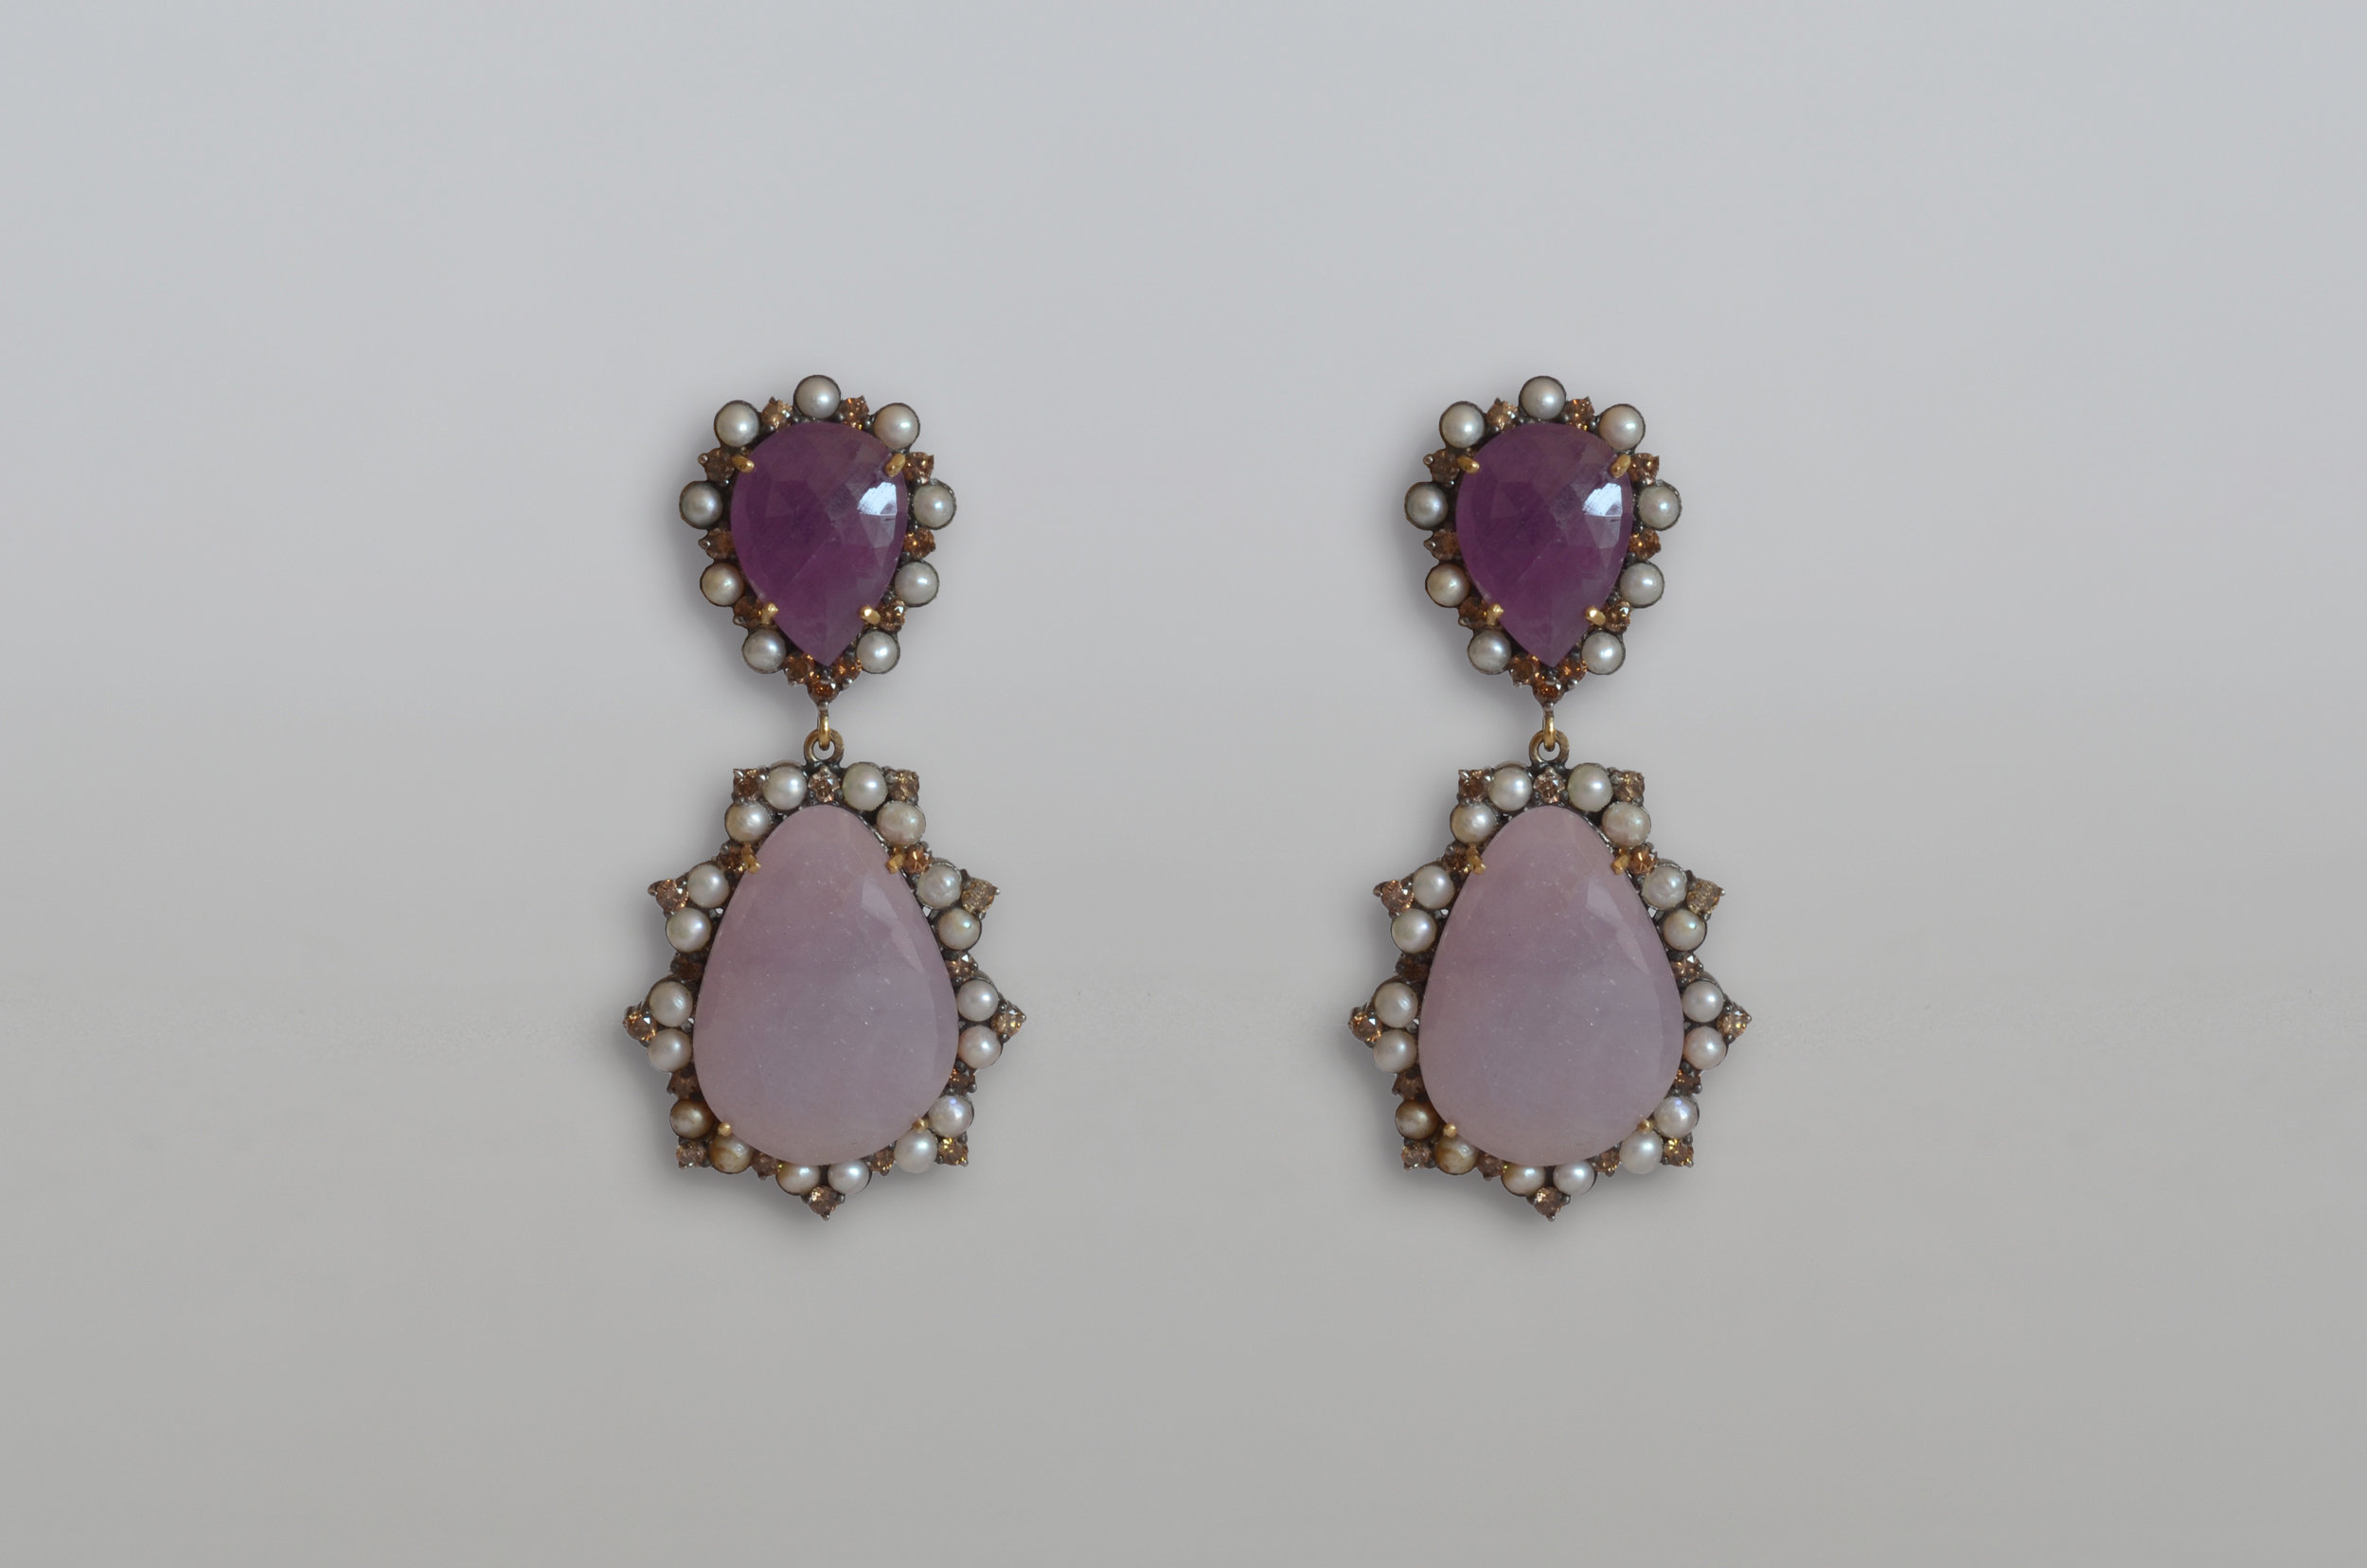 41.40 Carat Pink Sapphire Slice Earrings with 1.86 Carat Diamonds and Pearls set in Sterling Silver with 18kt Gold Posts